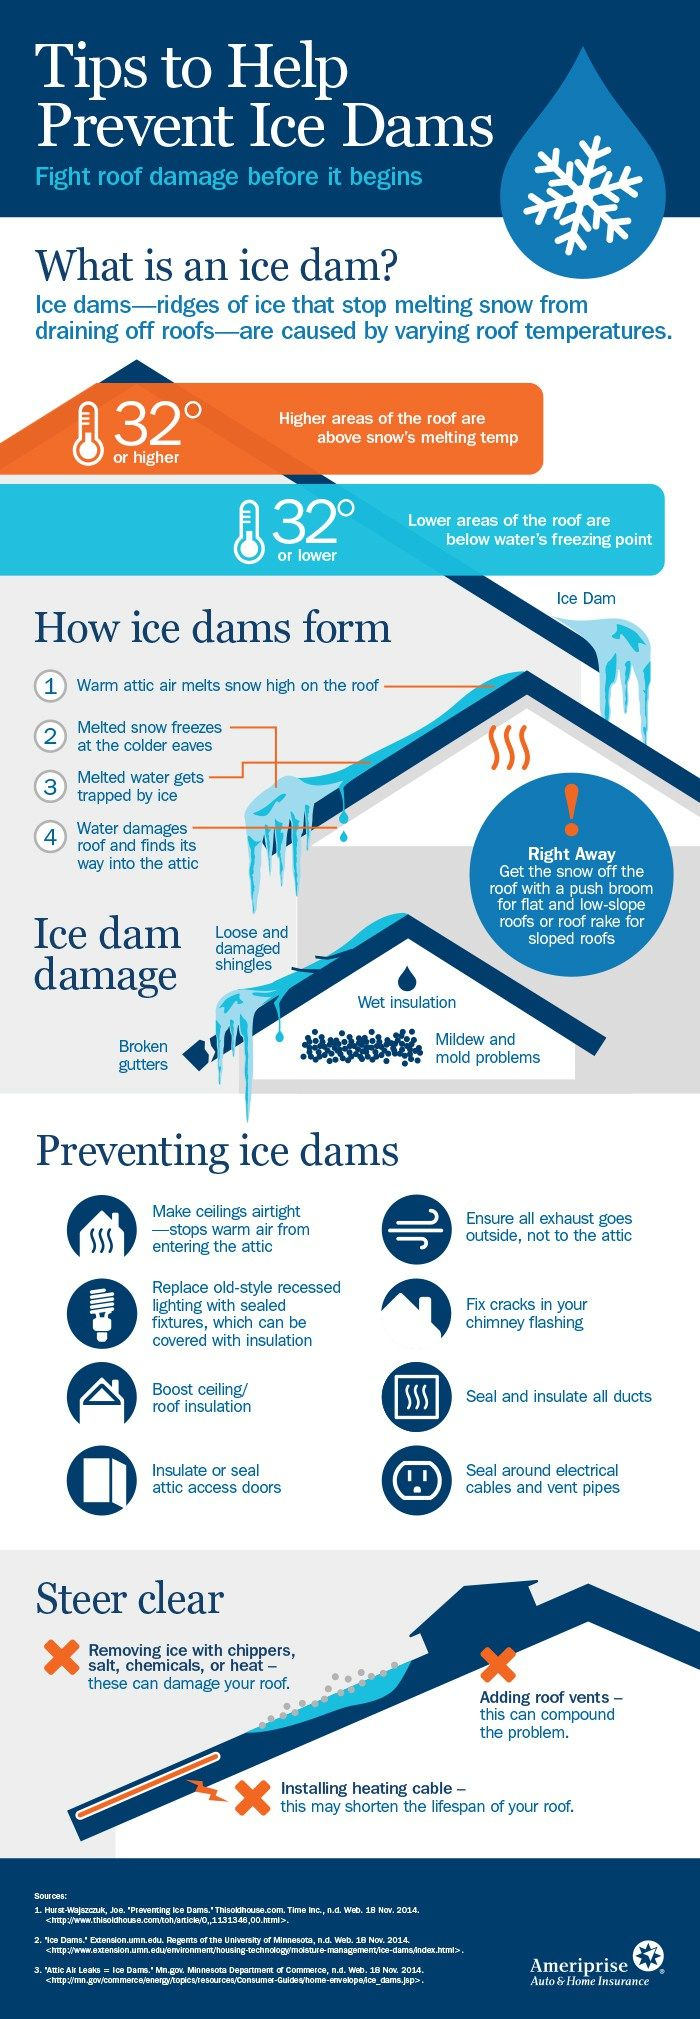 Tips To Prevent Ice Dams The very best Homeowner tips